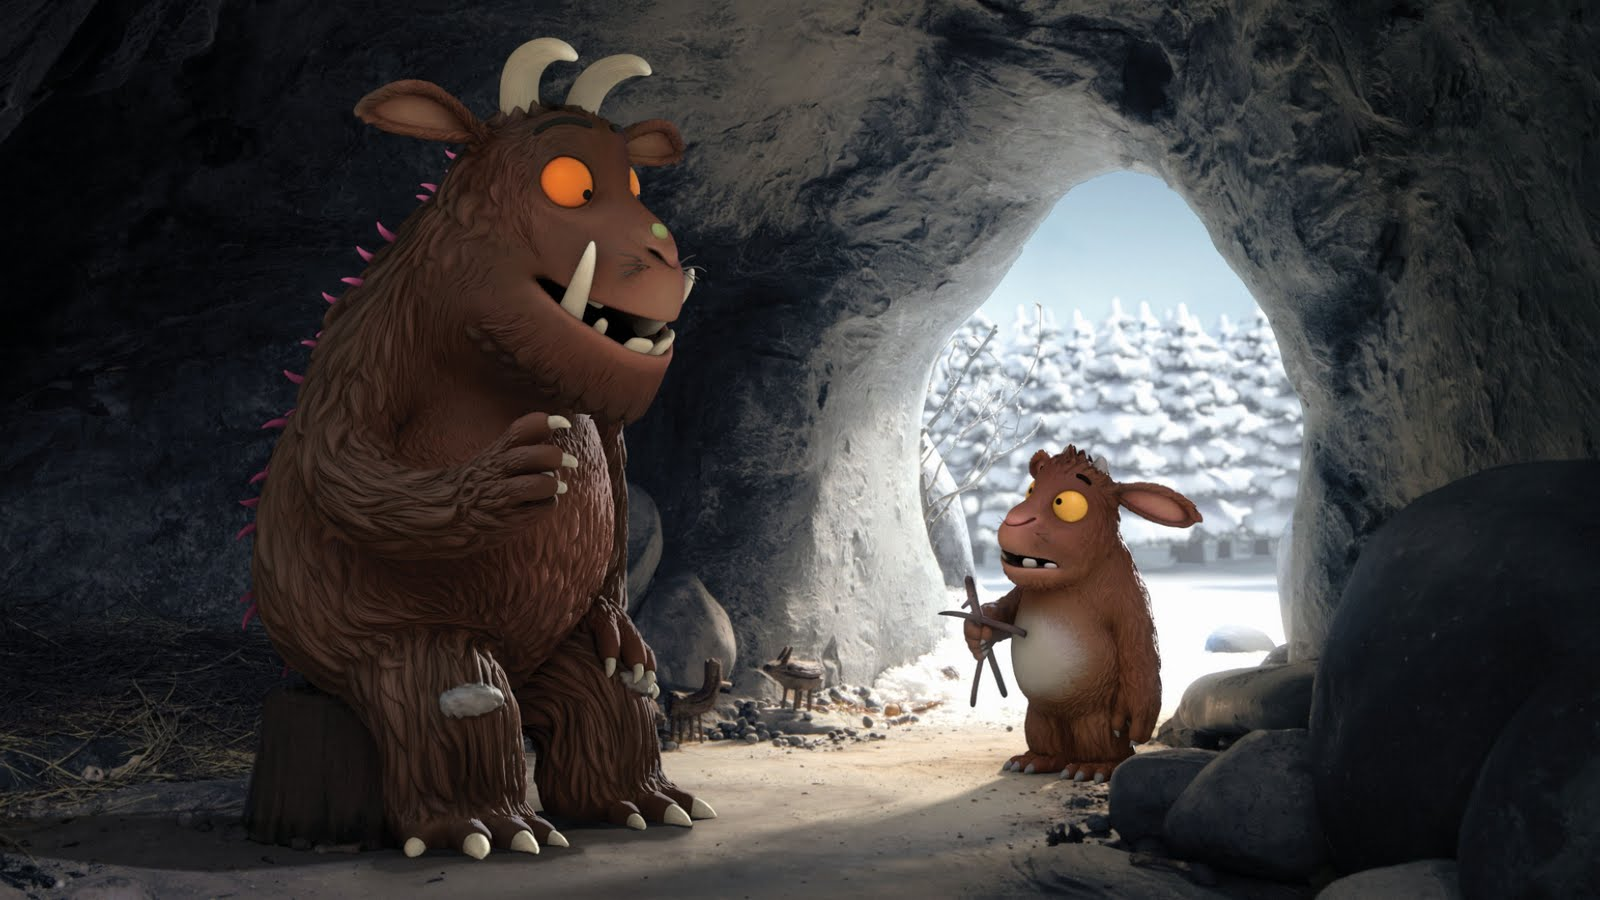 The Gruffalo´s Child listens to her Father - The Gruffalo